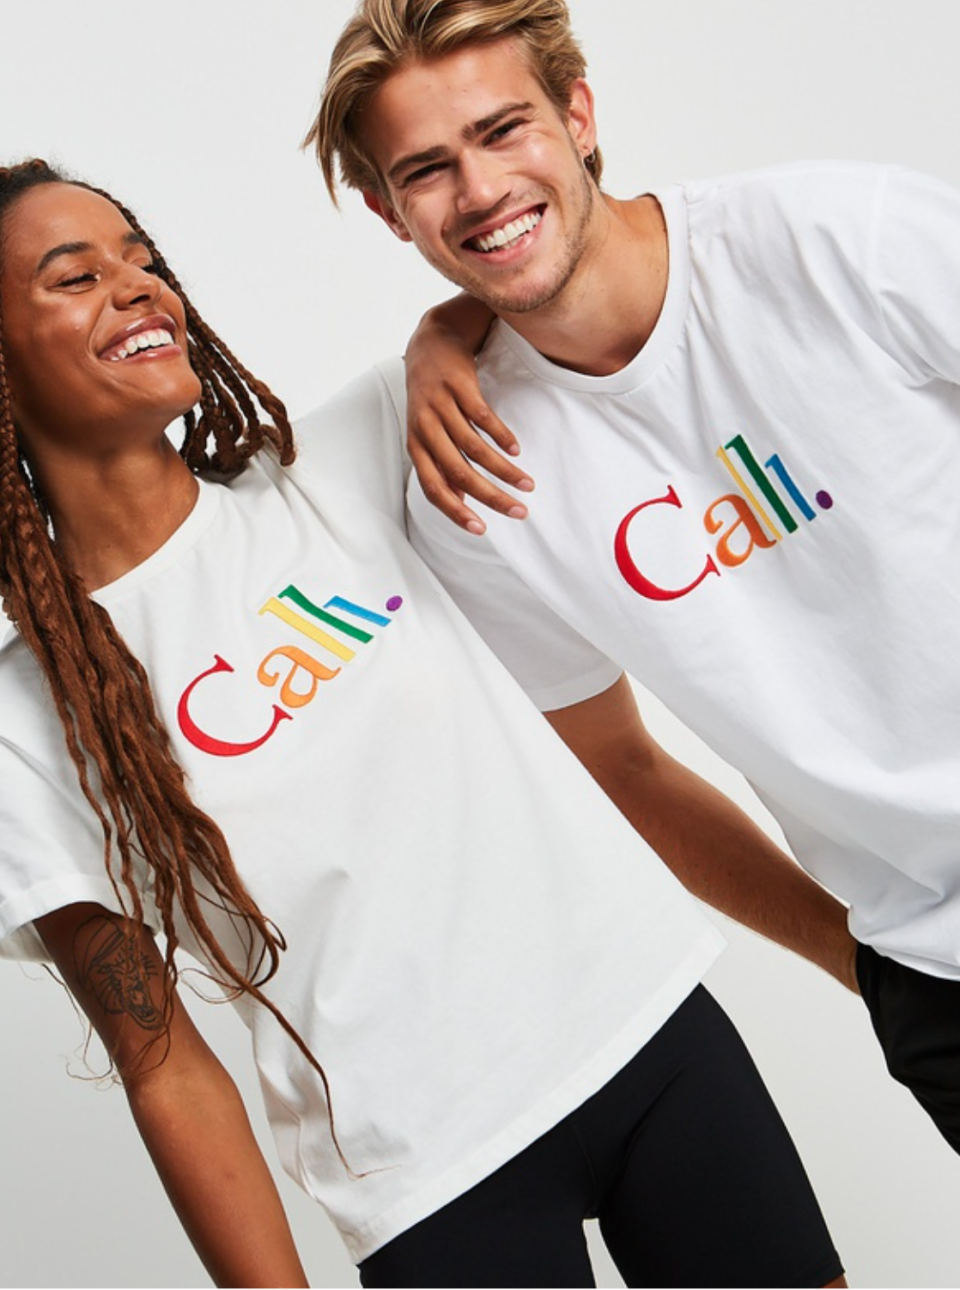 Two people wearing Calli's Sydney mardi gras T-shirts